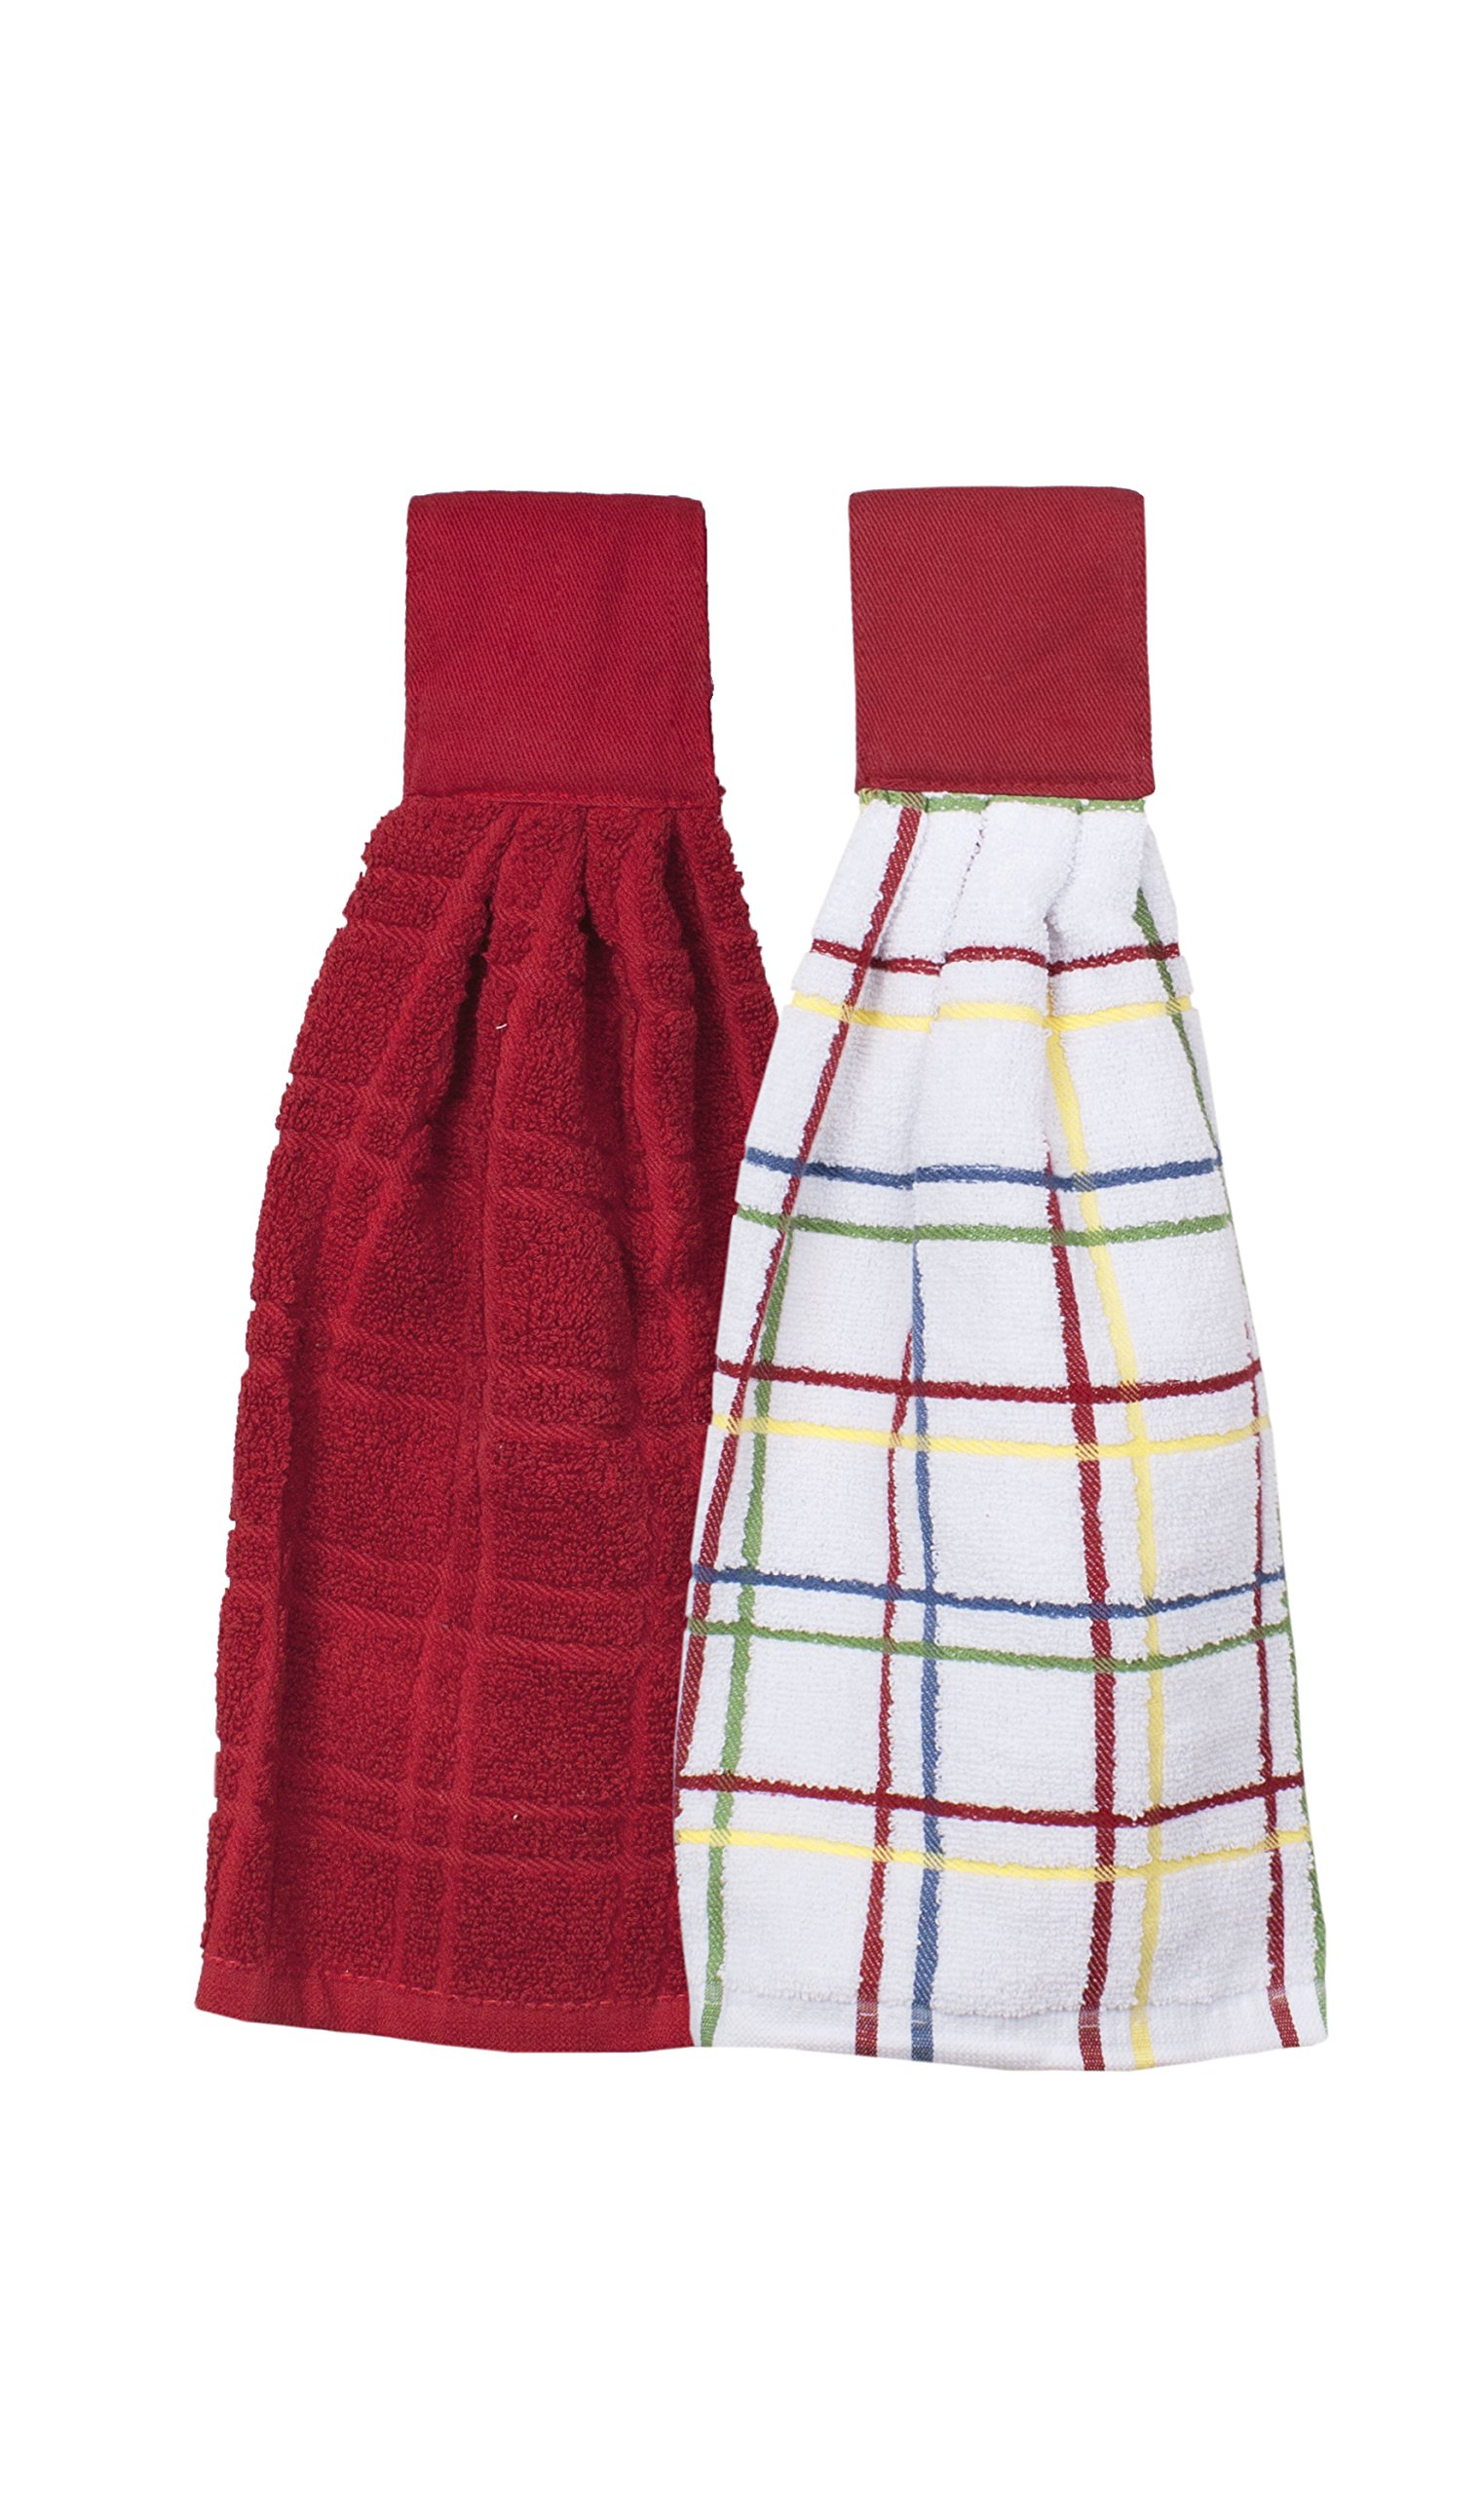 Ritz Kitchen Wears 100% Cotton Hanging Tie Towels, 2 Pack Checked And Solid, Paprika Red, 2 Piece